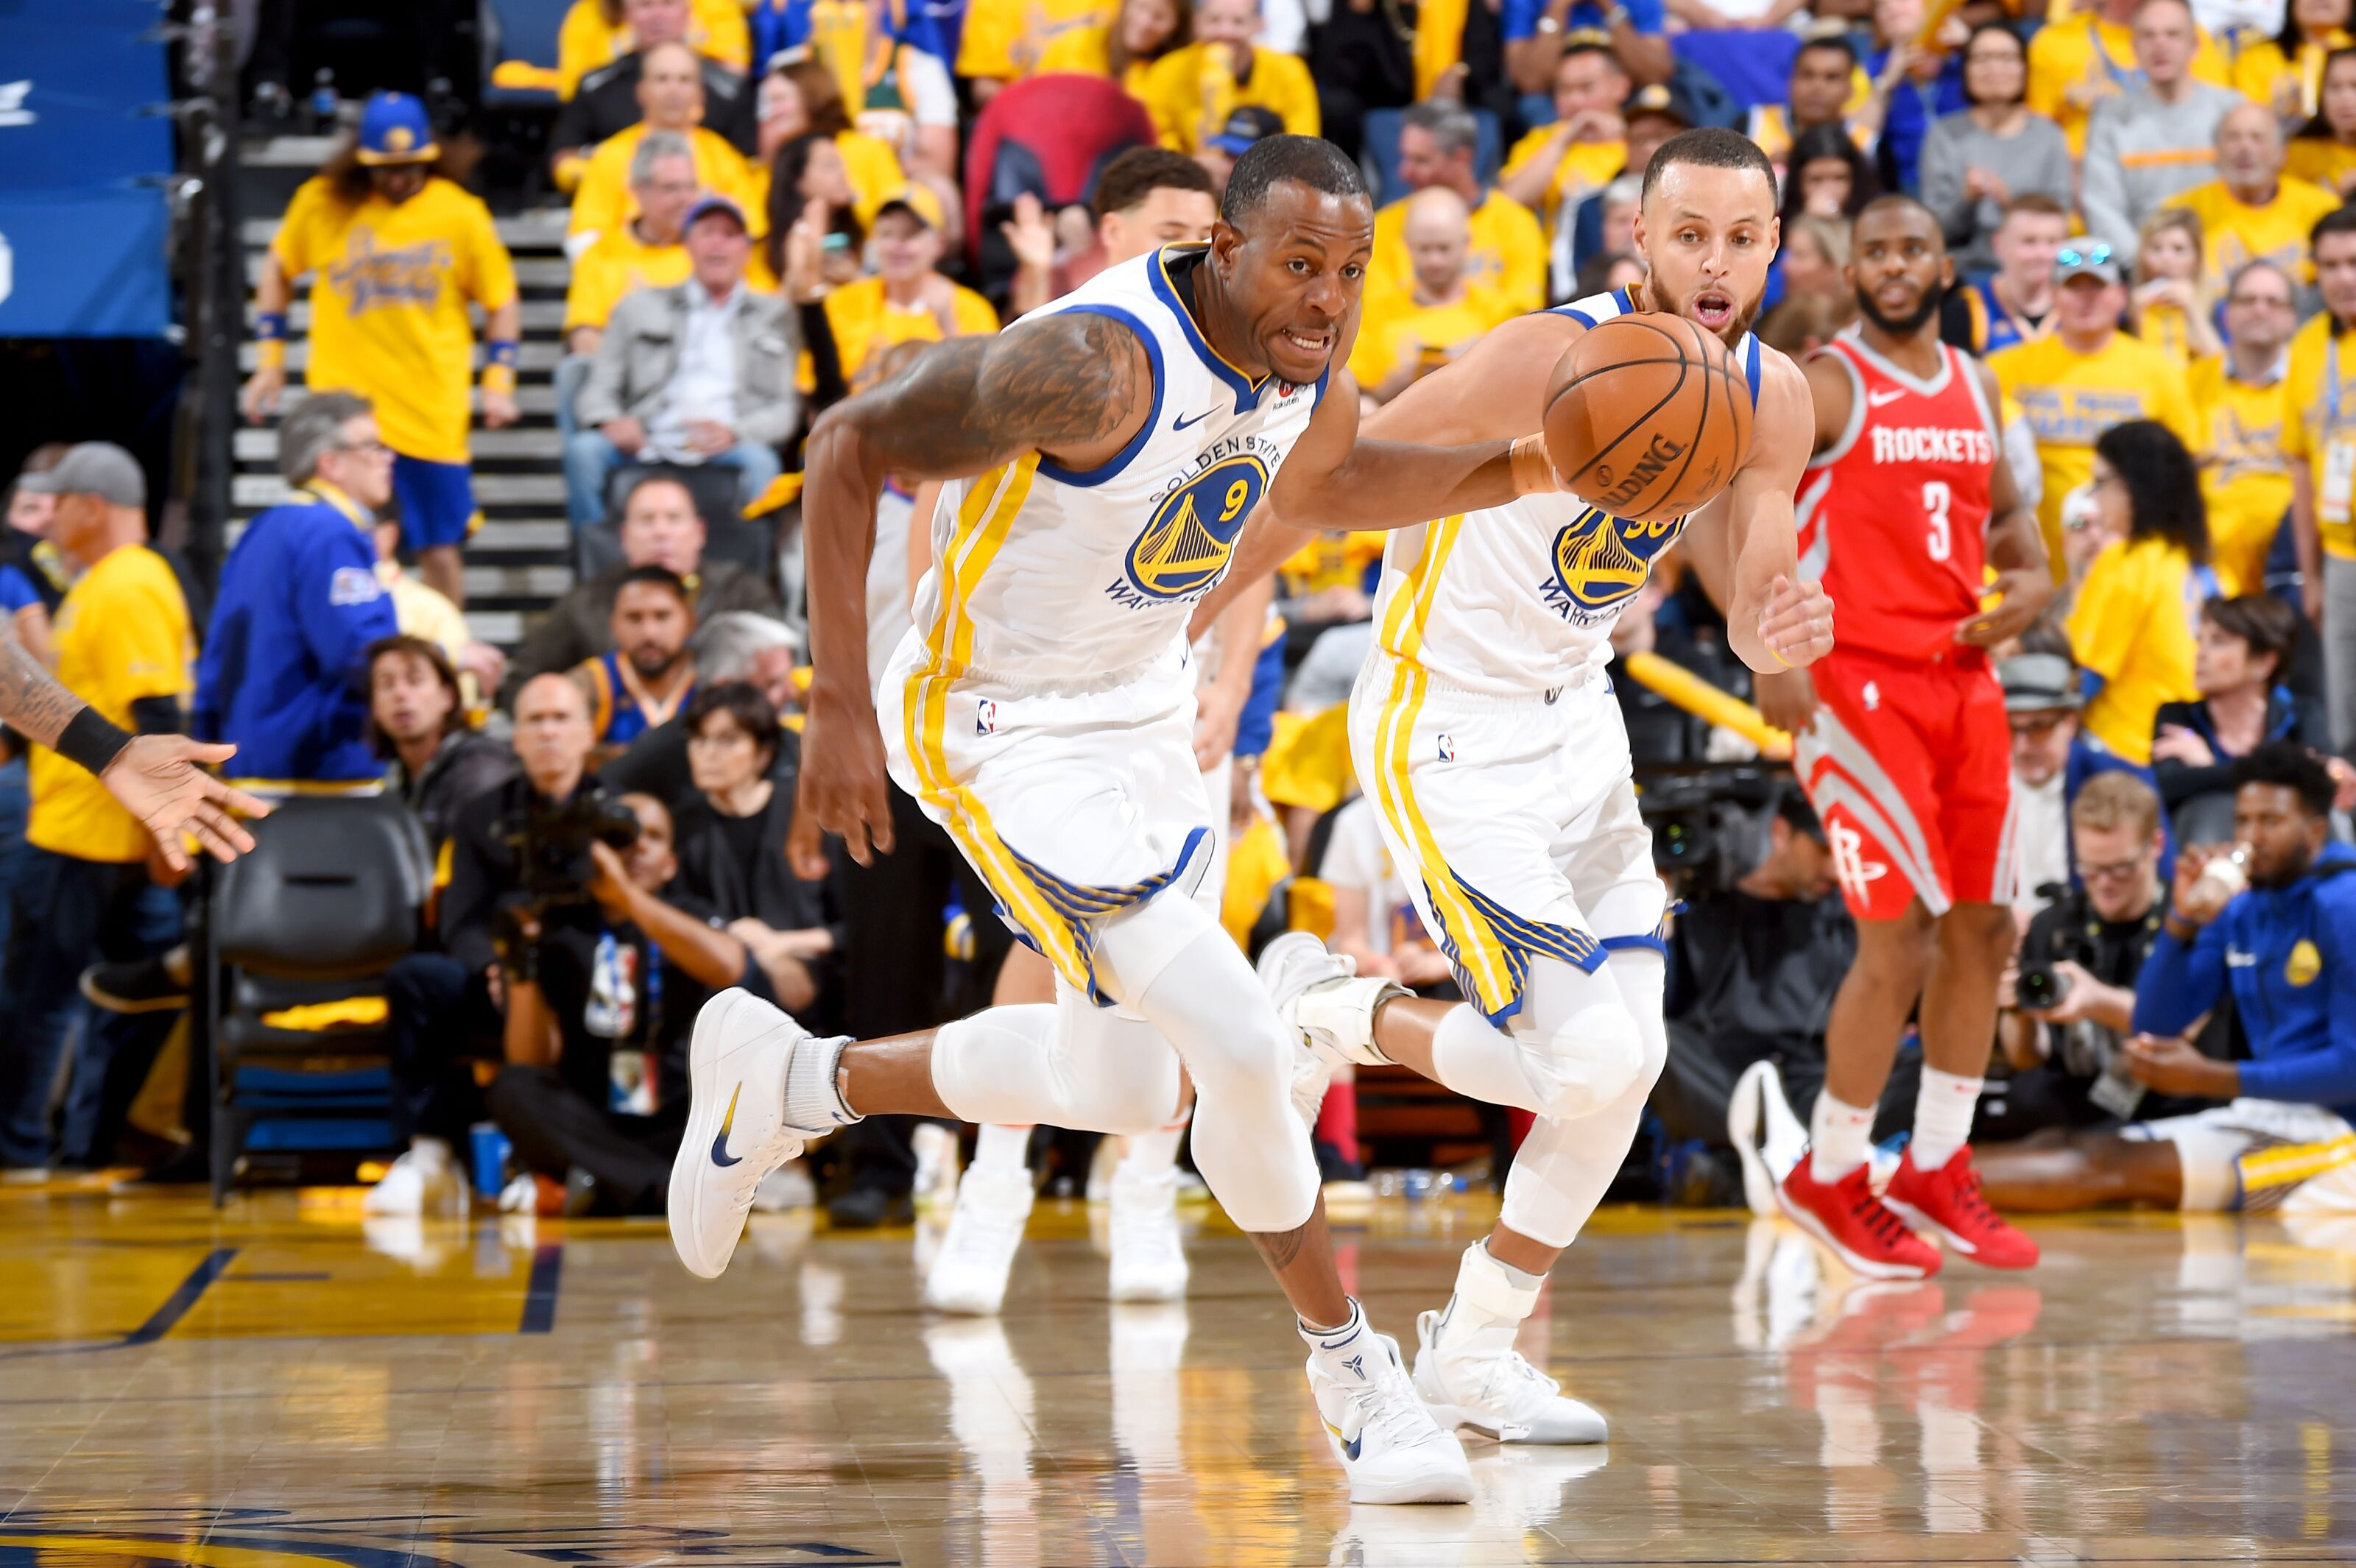 Warriors: Andre Iguodala is Doubtful for Game 4 vs Rockets